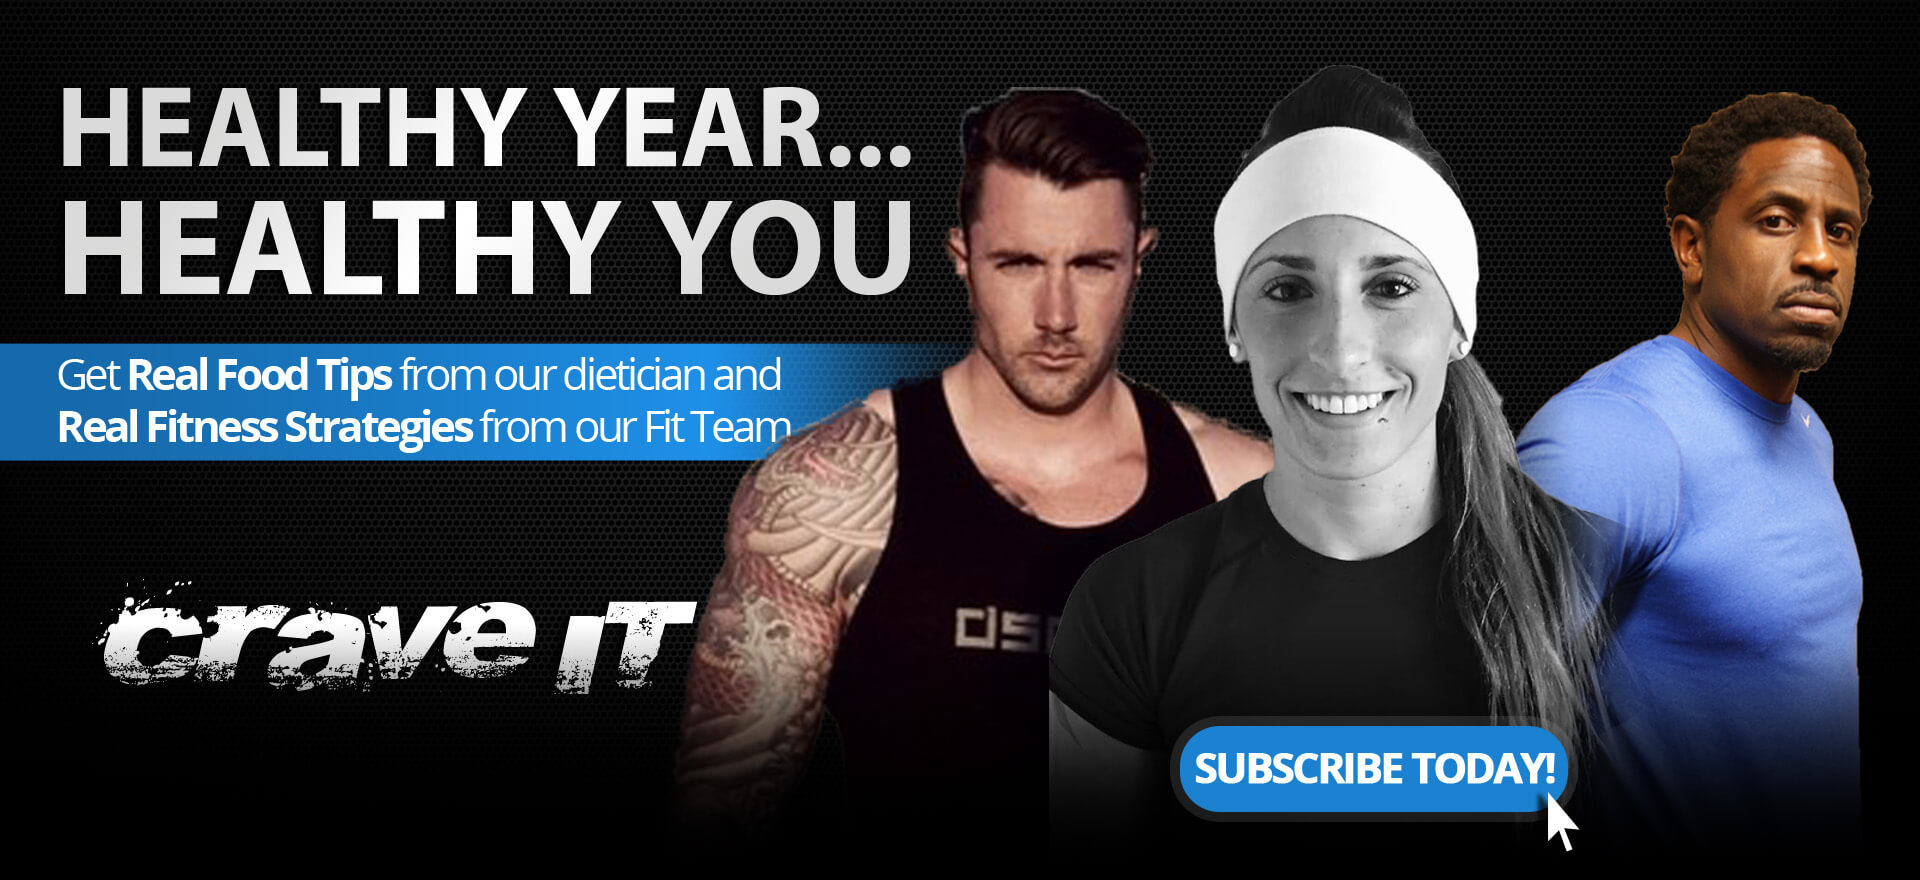 new-year-new-you-newsletter-banner